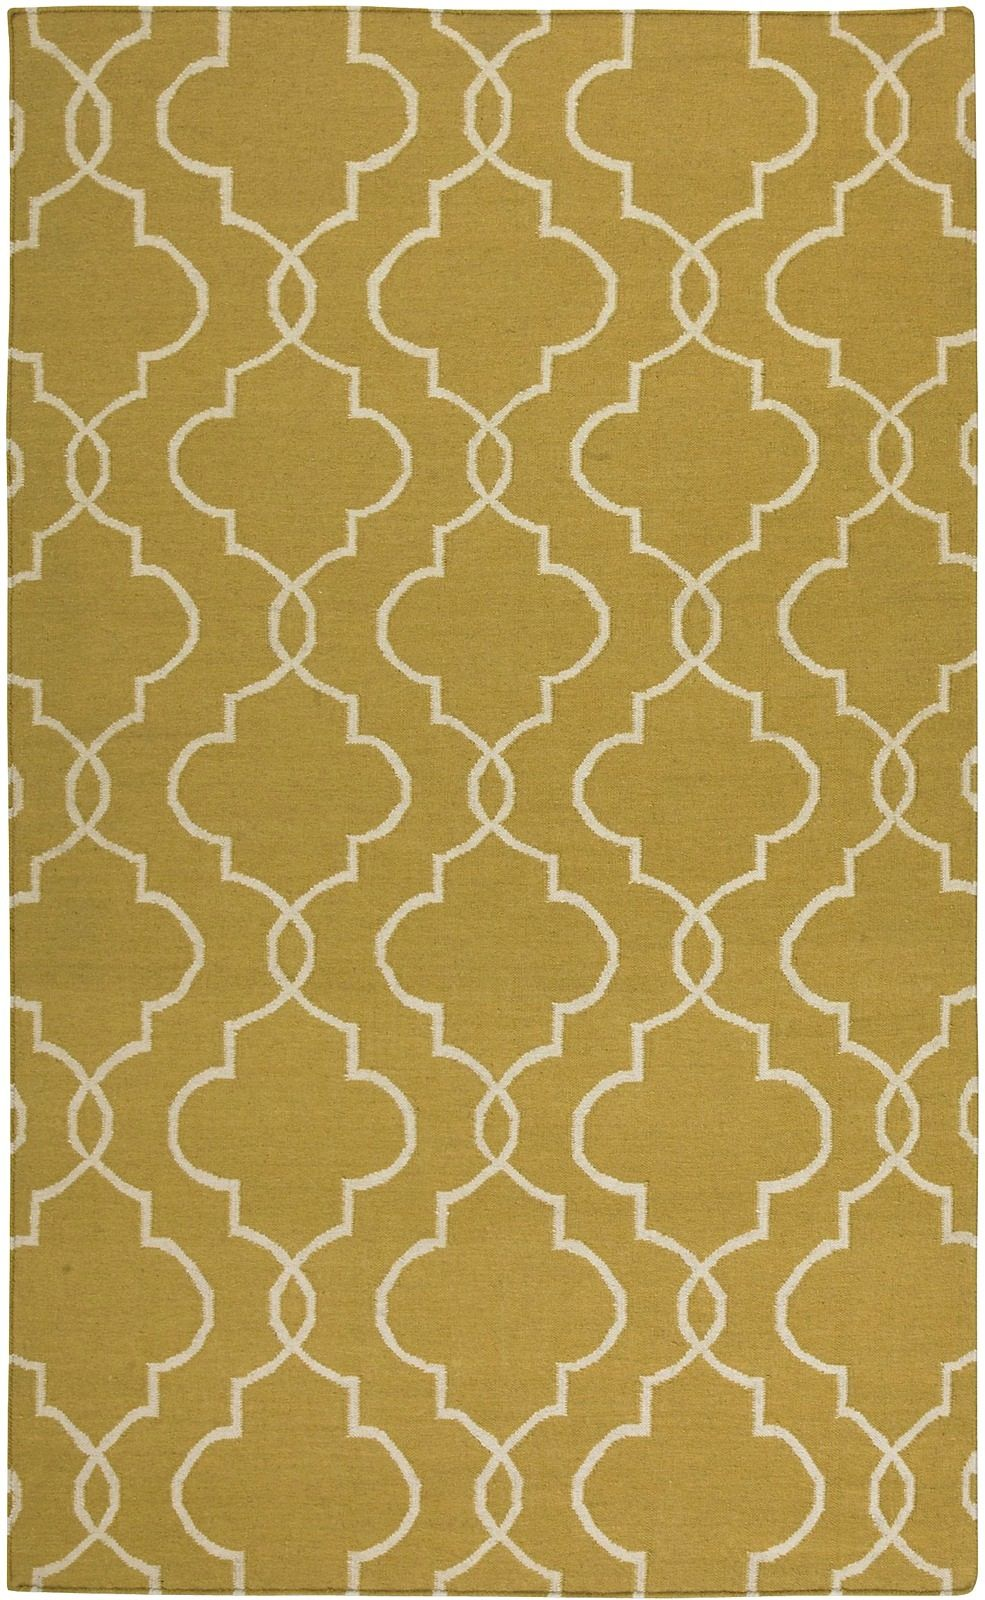 uttermost devonshire contemporary area rug collection